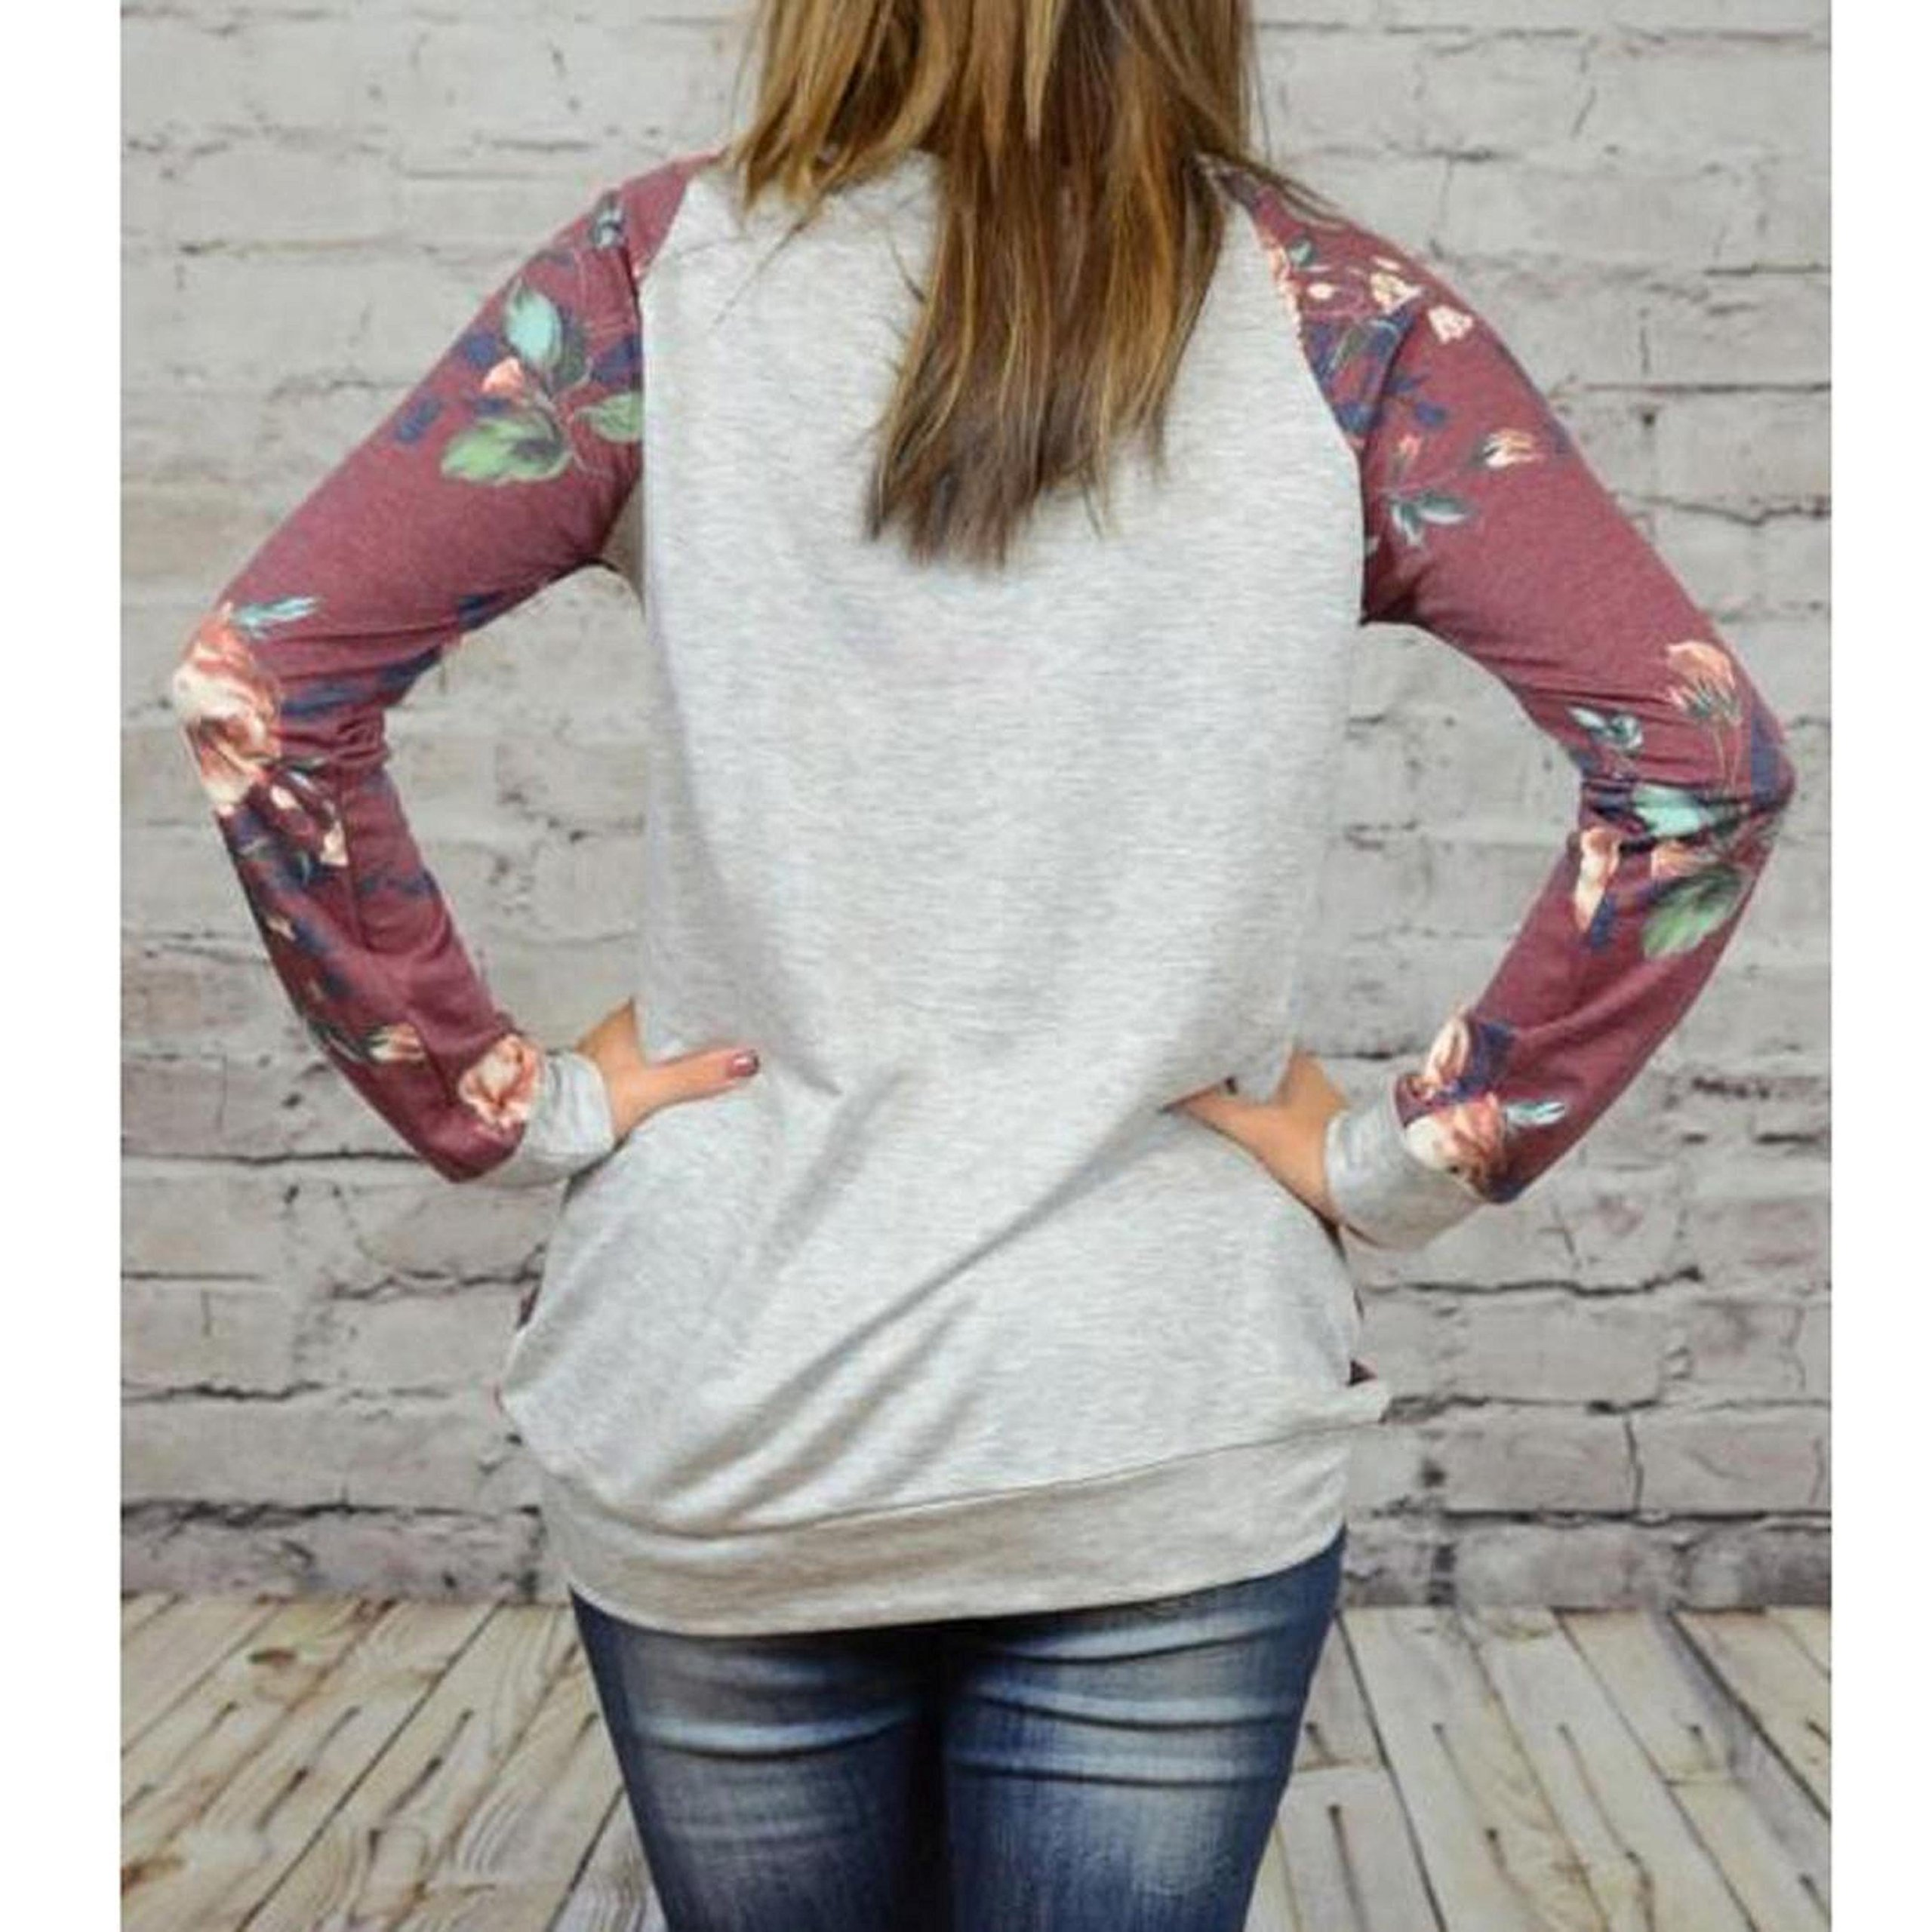 PPBUY Women Autumn Floral Printing Long Sleeve Shirt Casual Top Blouse (XL, Red) by PPBUY (Image #3)